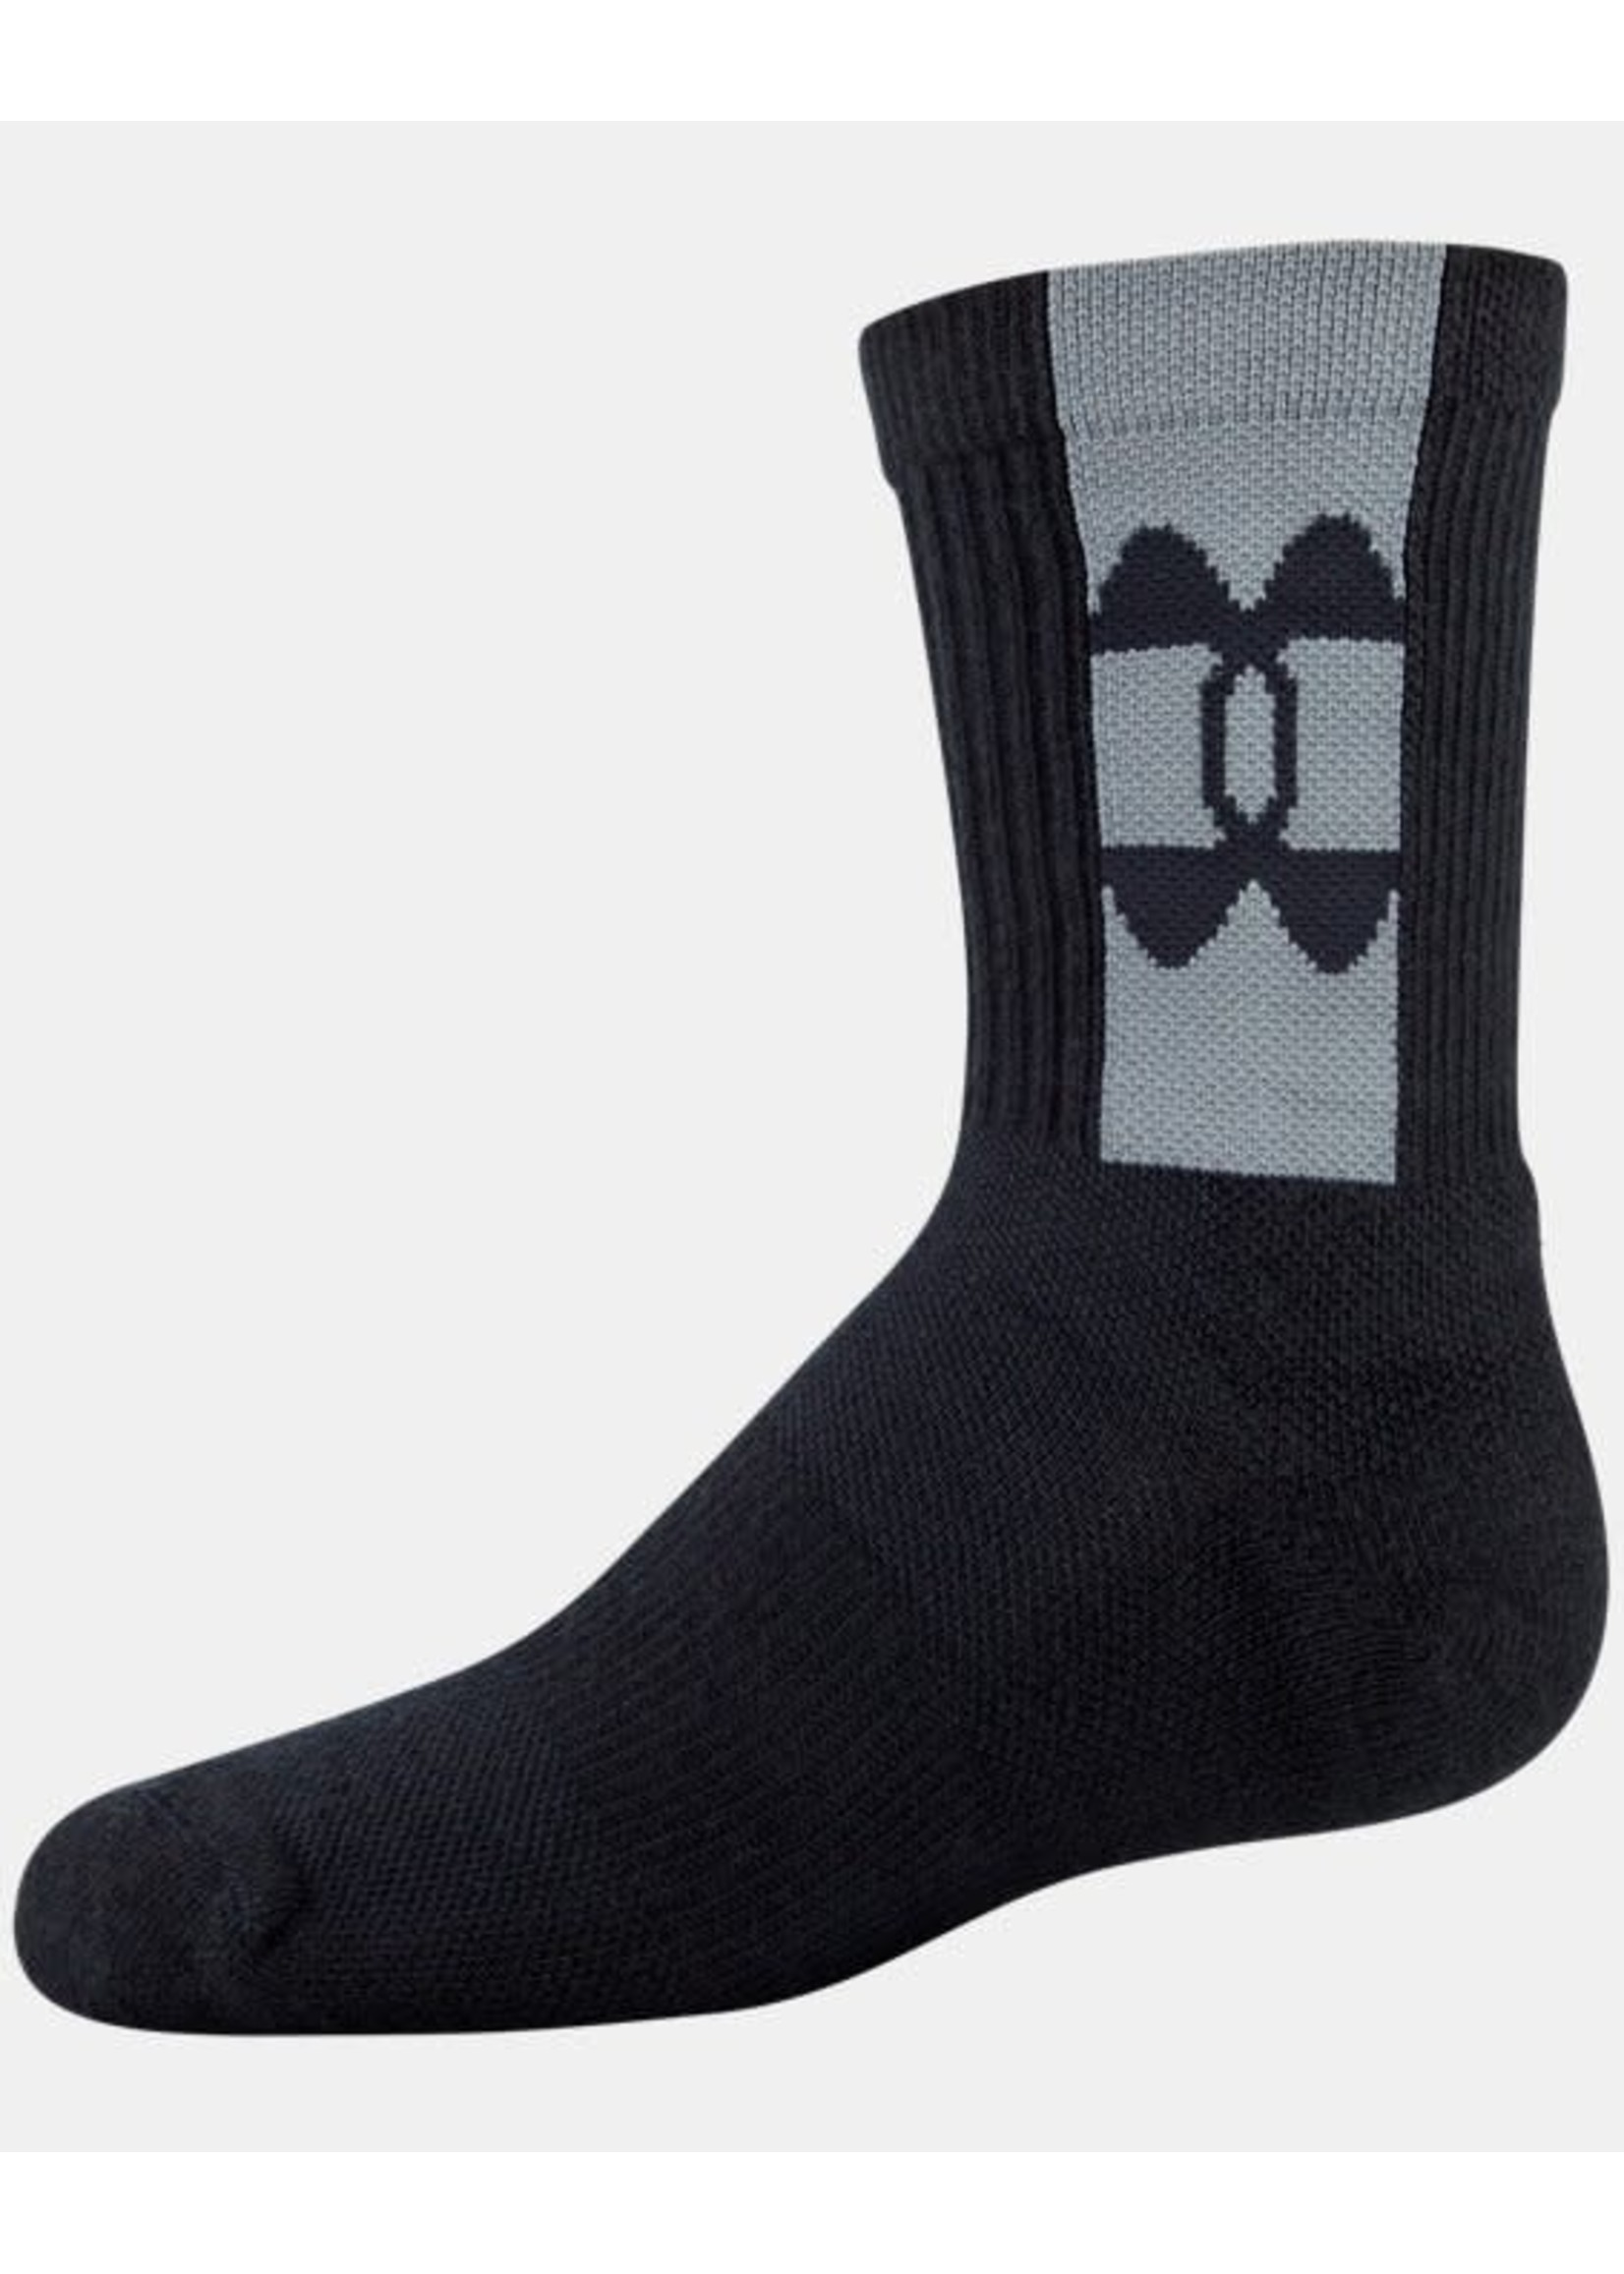 UNDER ARMOUR Chausettes Game & Practice Crew